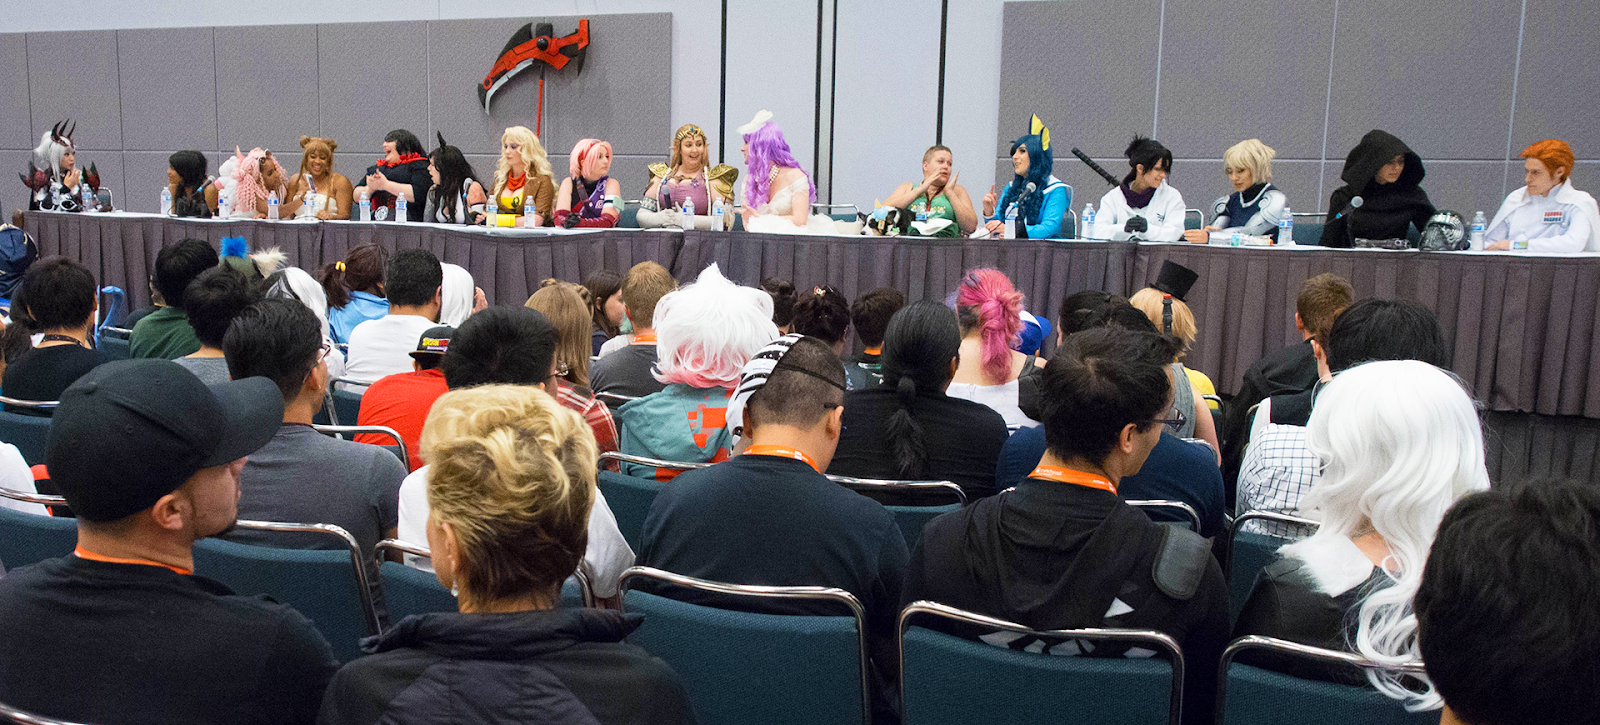 convention attendees with cosplayers